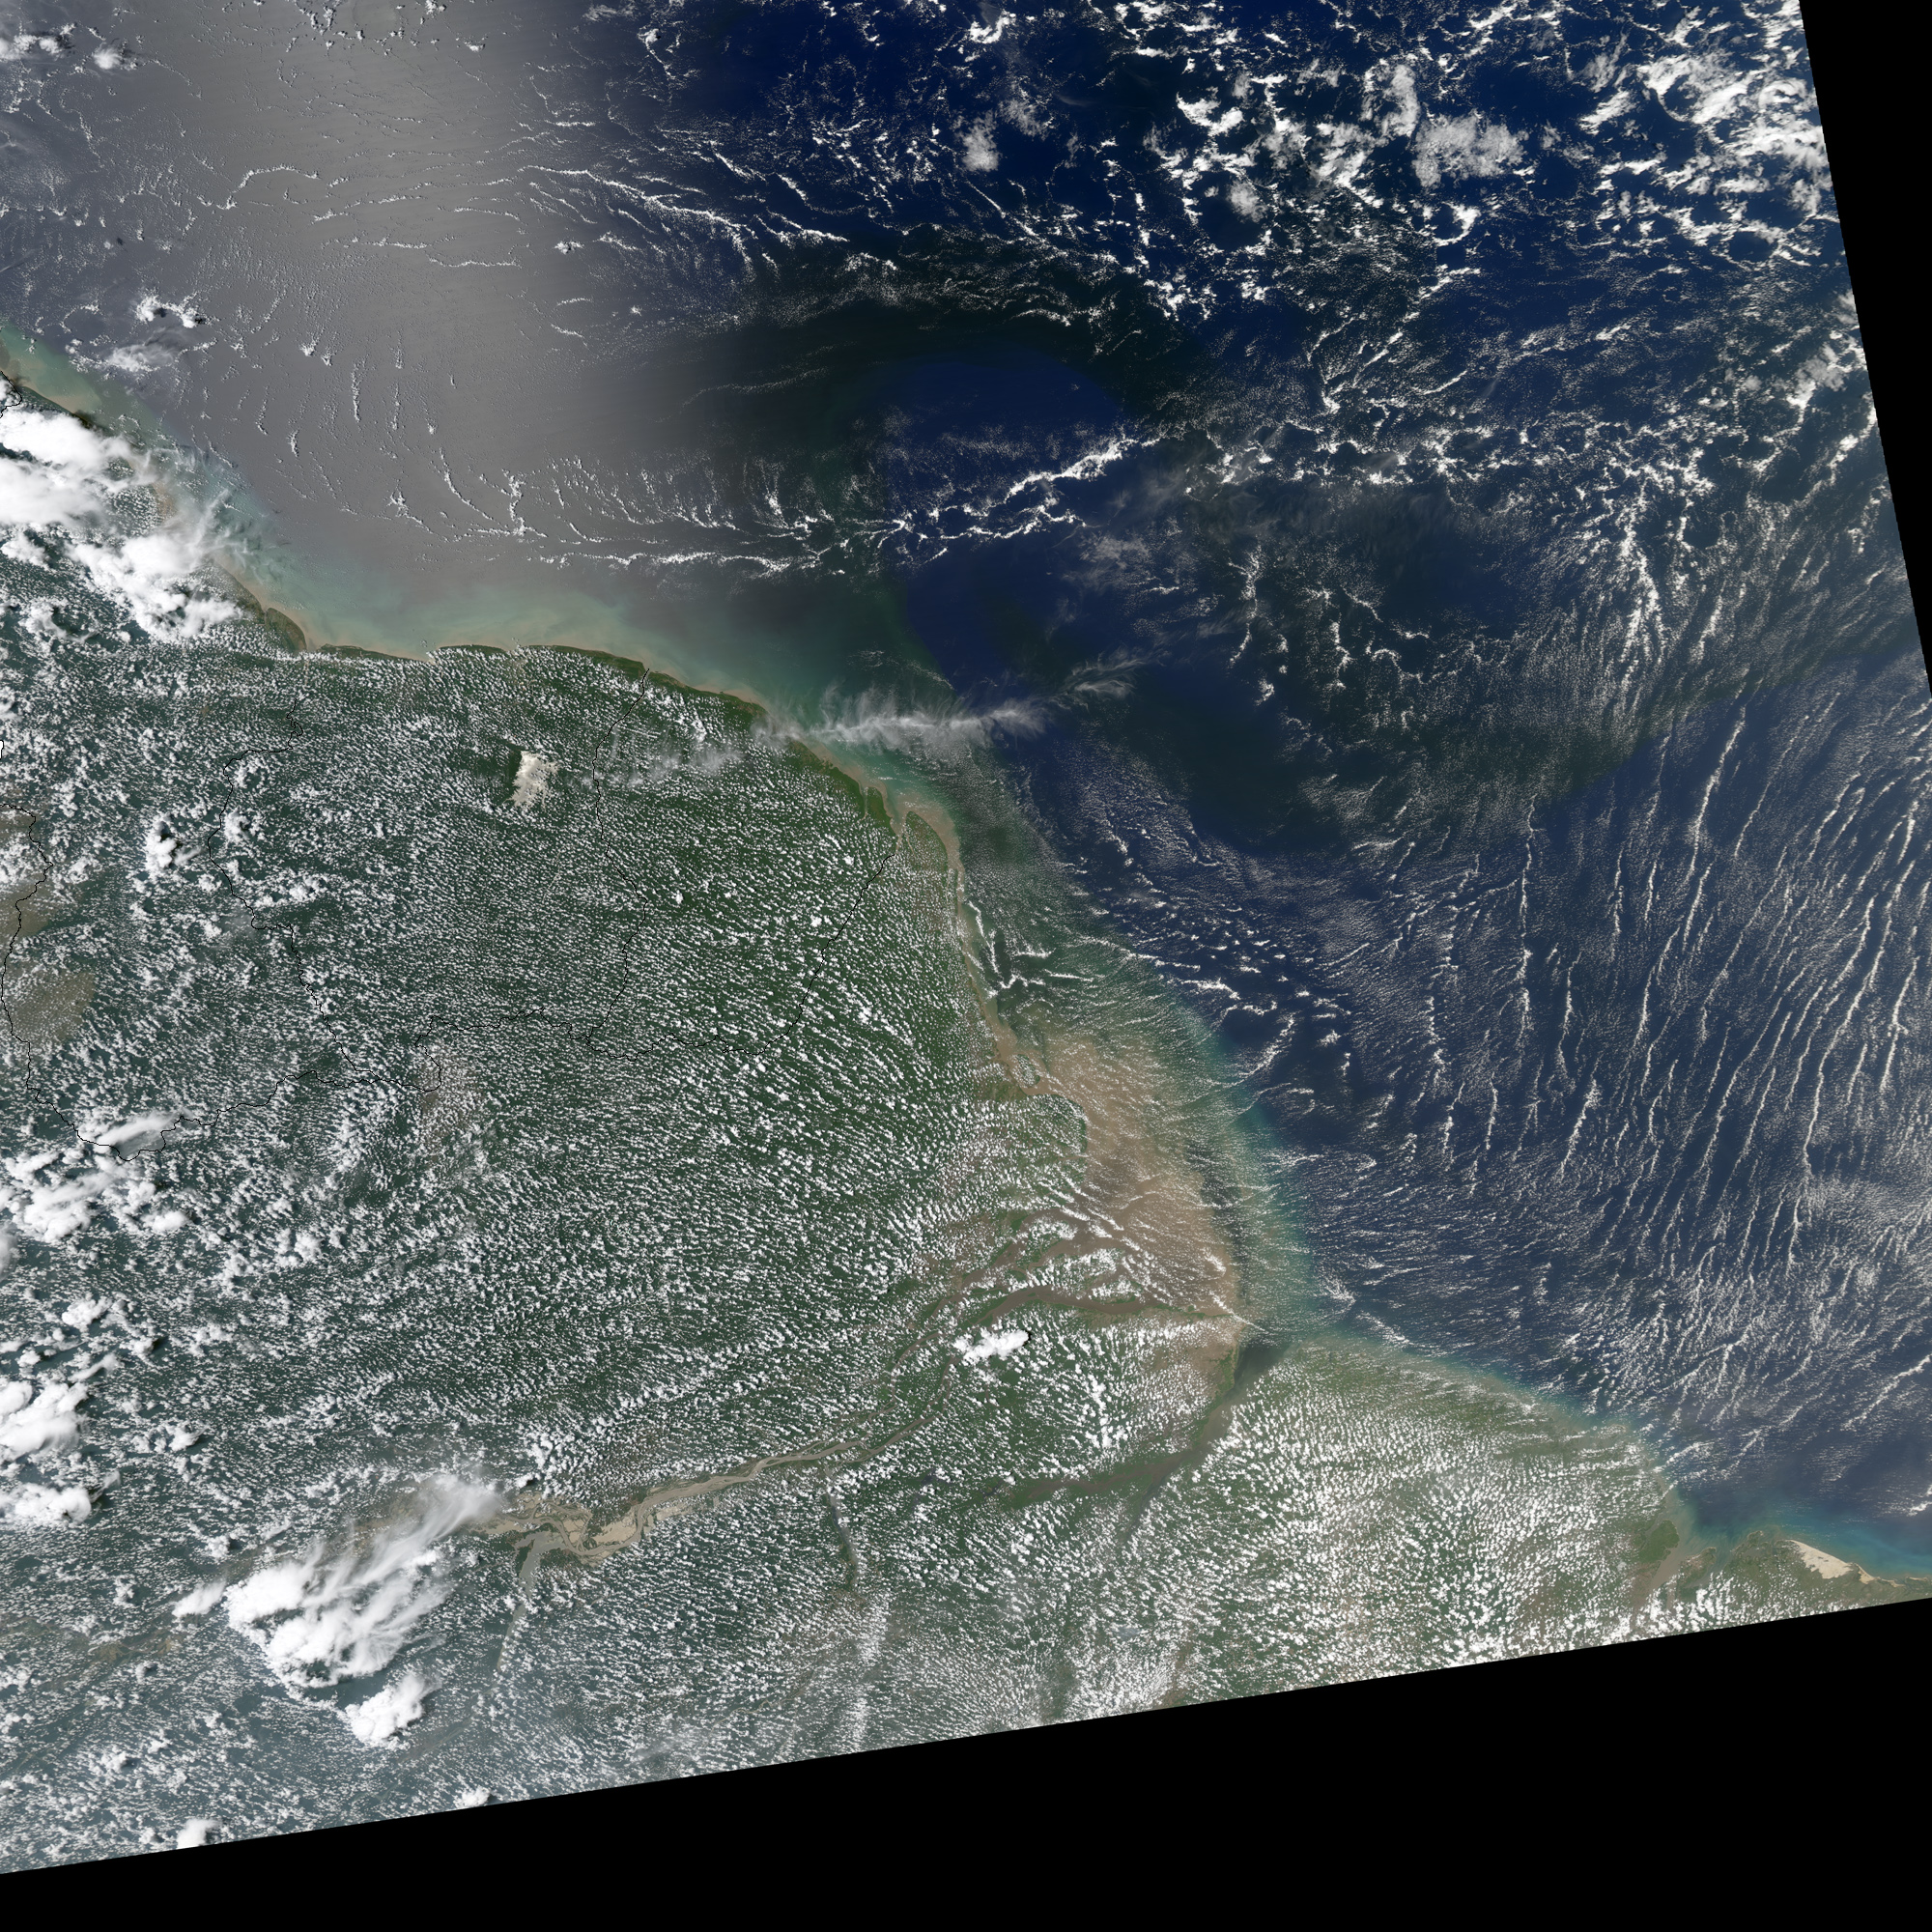 Canal de panamá) is an artificial 82 km (51 mi) waterway in panama that connects the atlantic ocean with the pacific ocean. Amazon River In The Atlantic Ocean